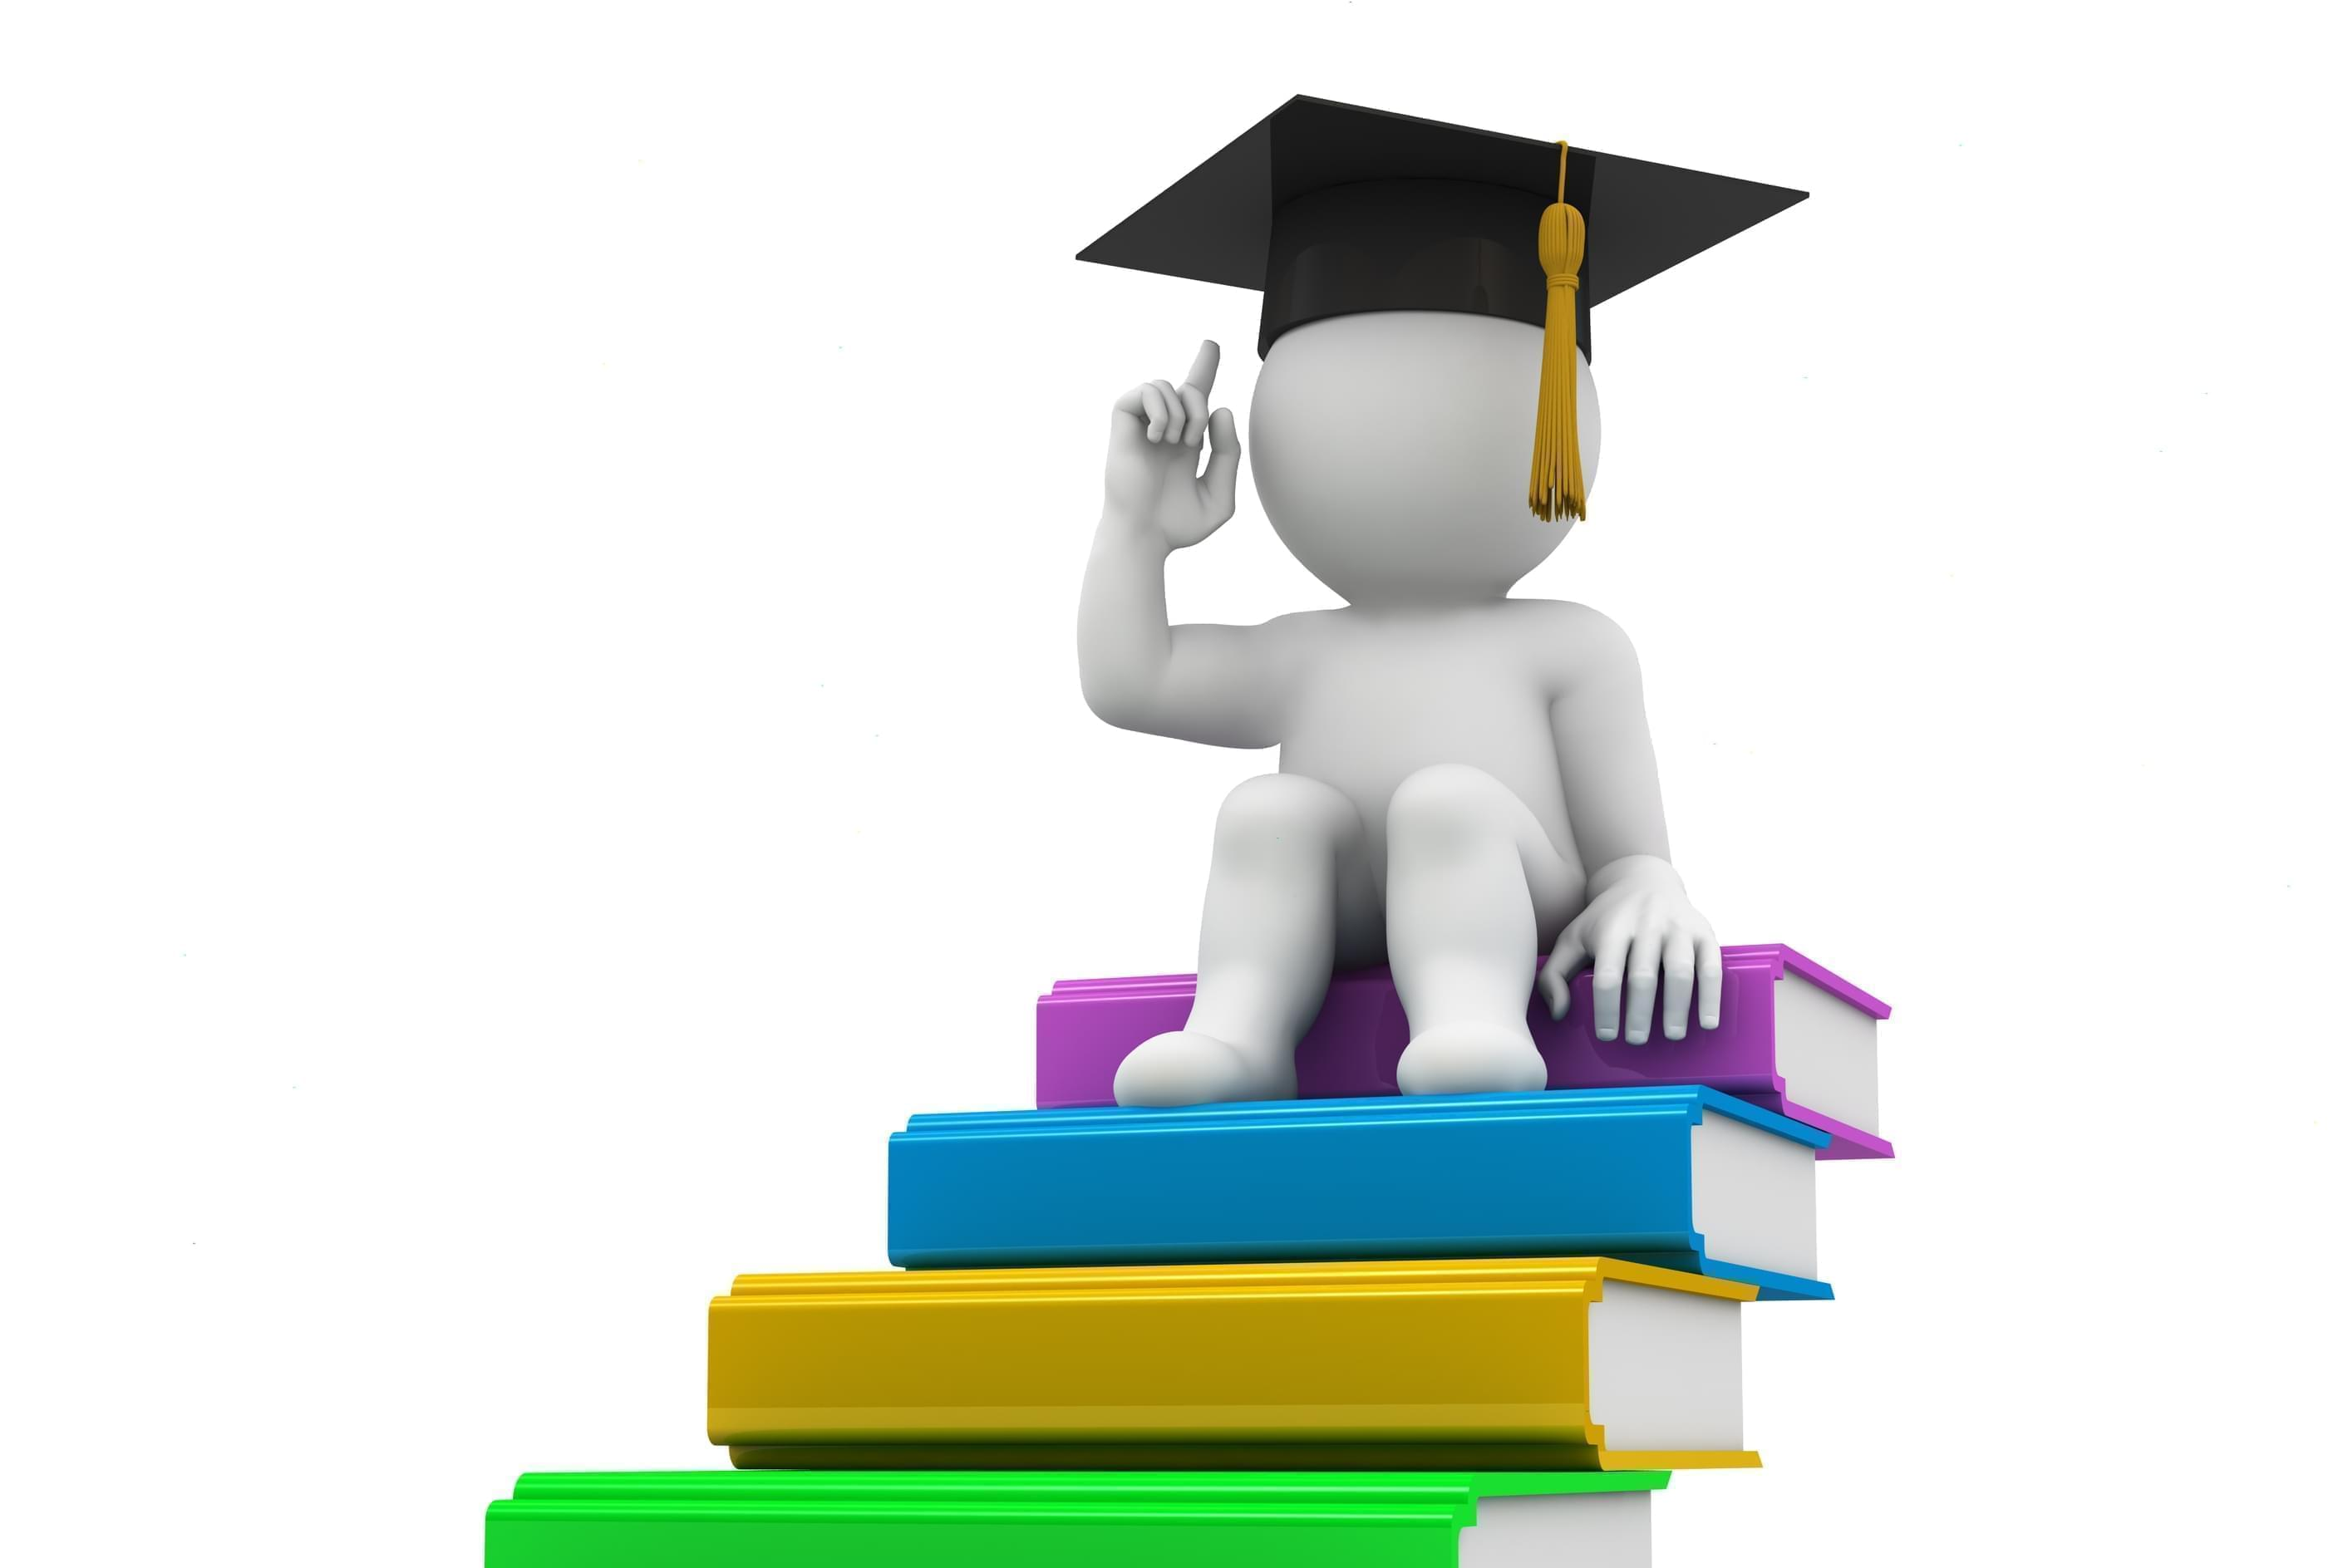 Graphic of everyman character with college graduate cap sitting on heap of books.